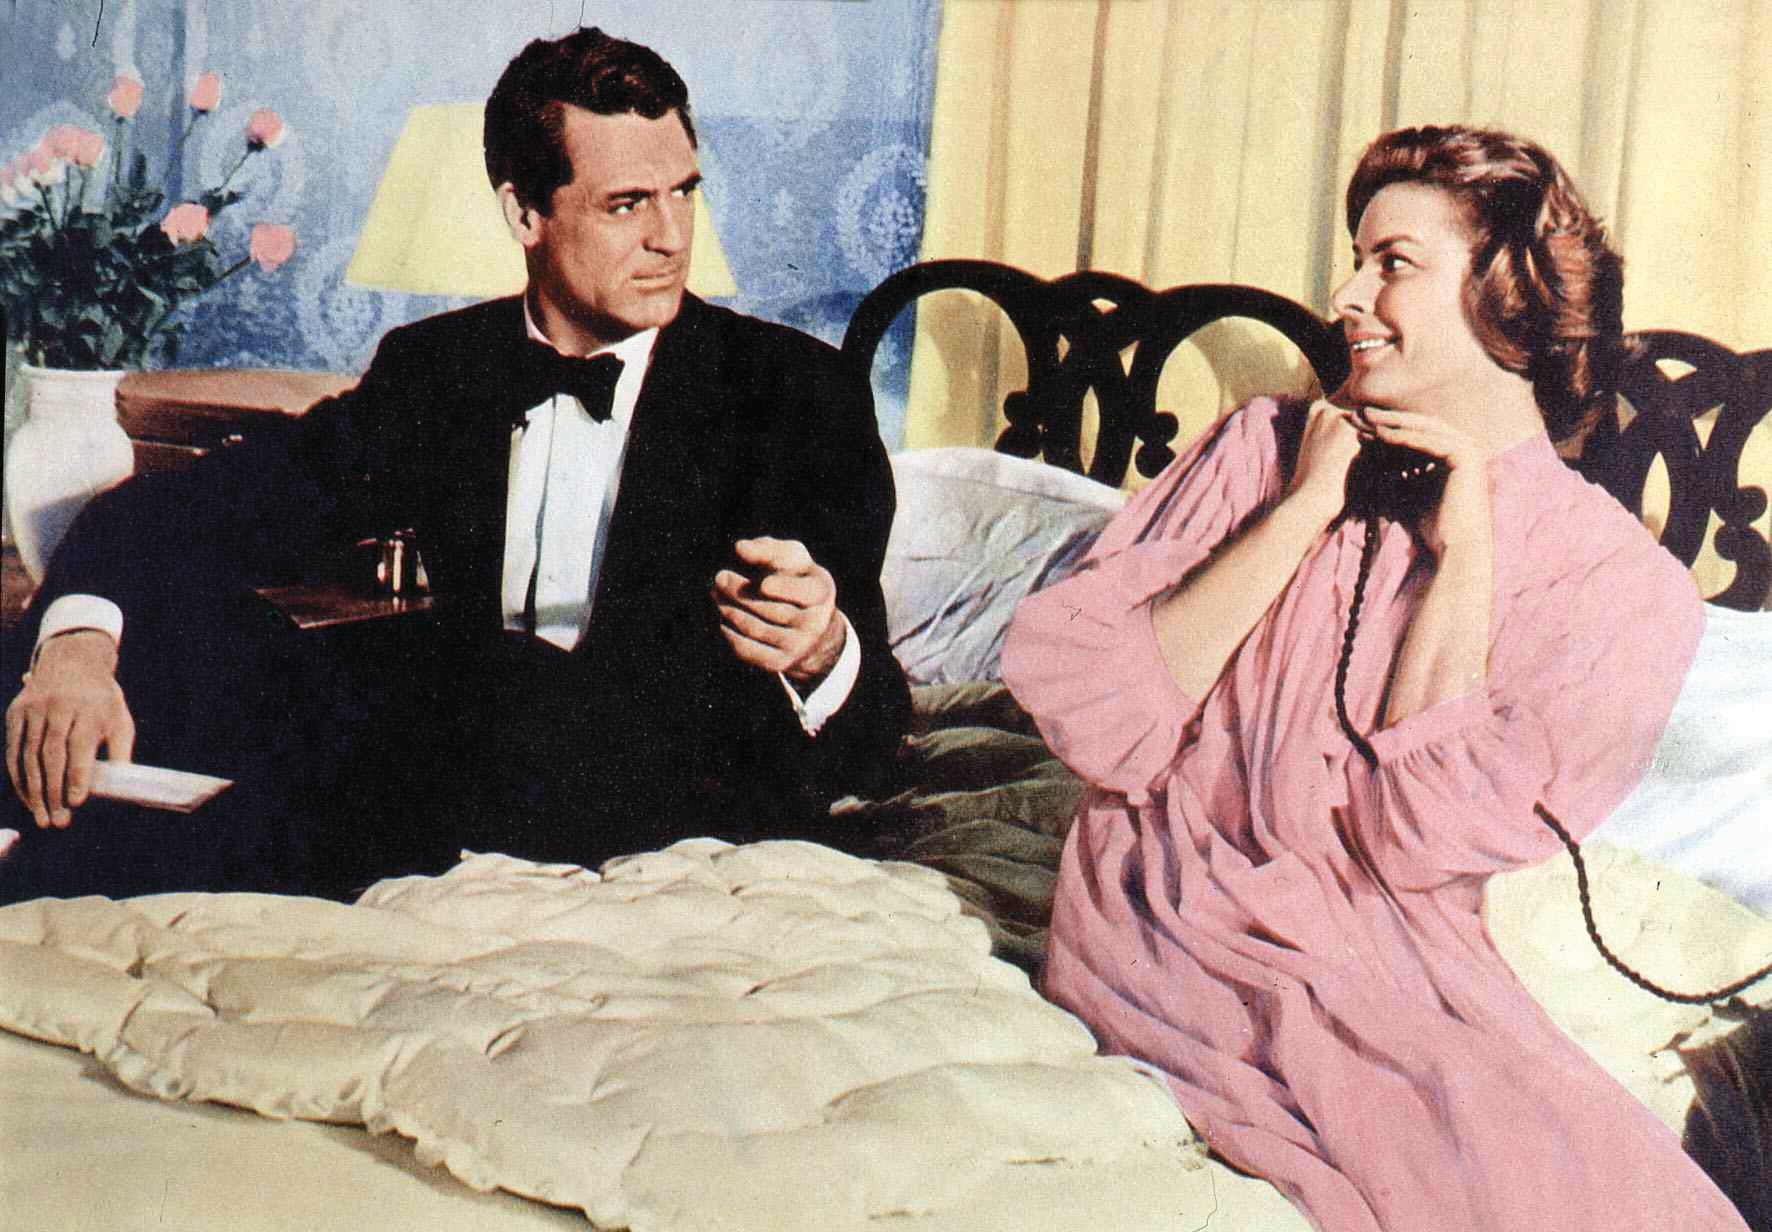 Cary Grant's turn in the 1950s romcom Indiscreet is a lesson in effortlessness